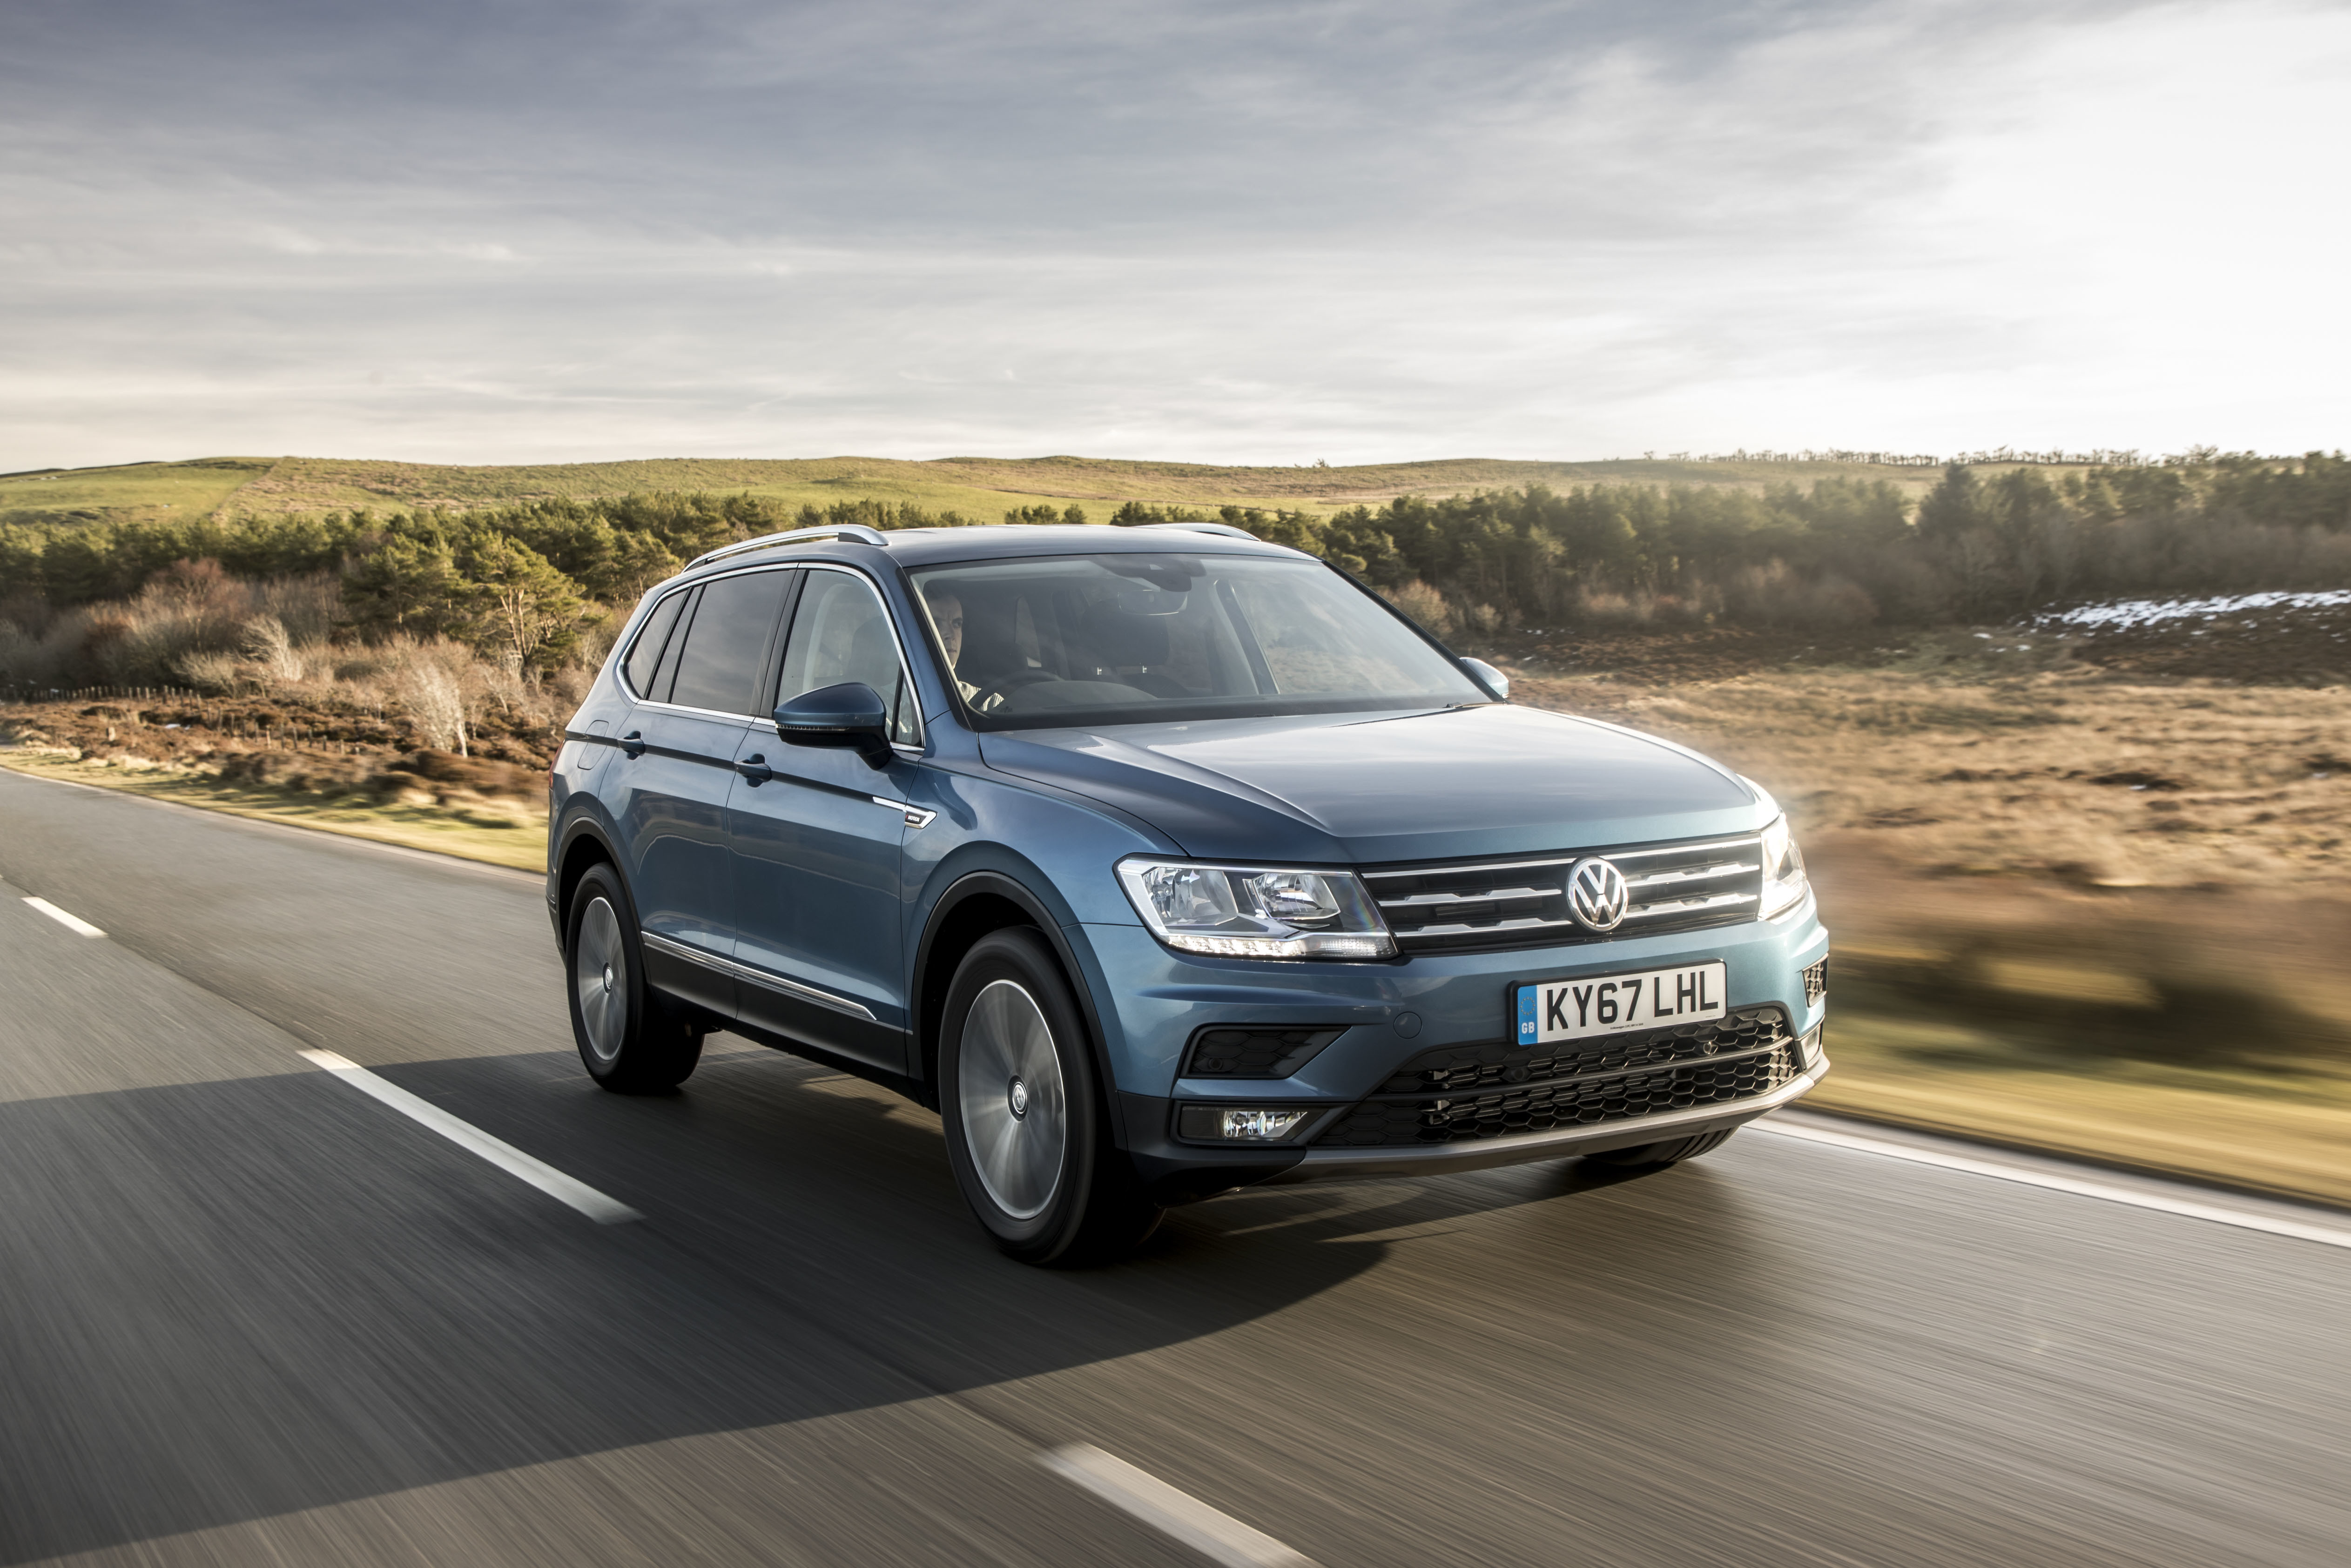 The Tiguan Allspace can be had with a 162 kW engine.